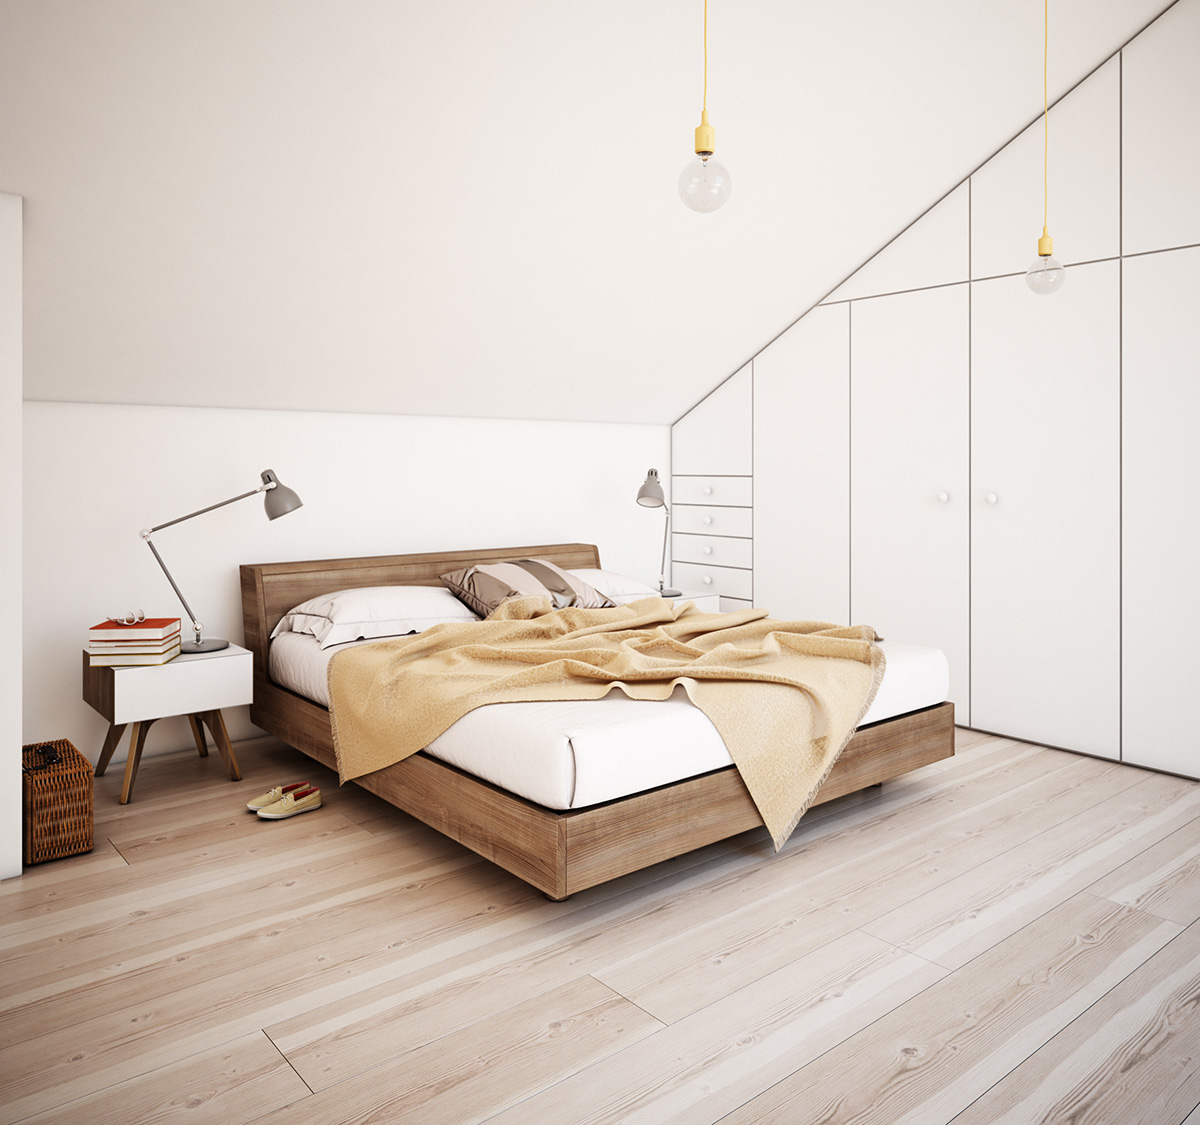 Mocha And White Bedroom Theme - 7 bedroom designs to inspire your next favorite style